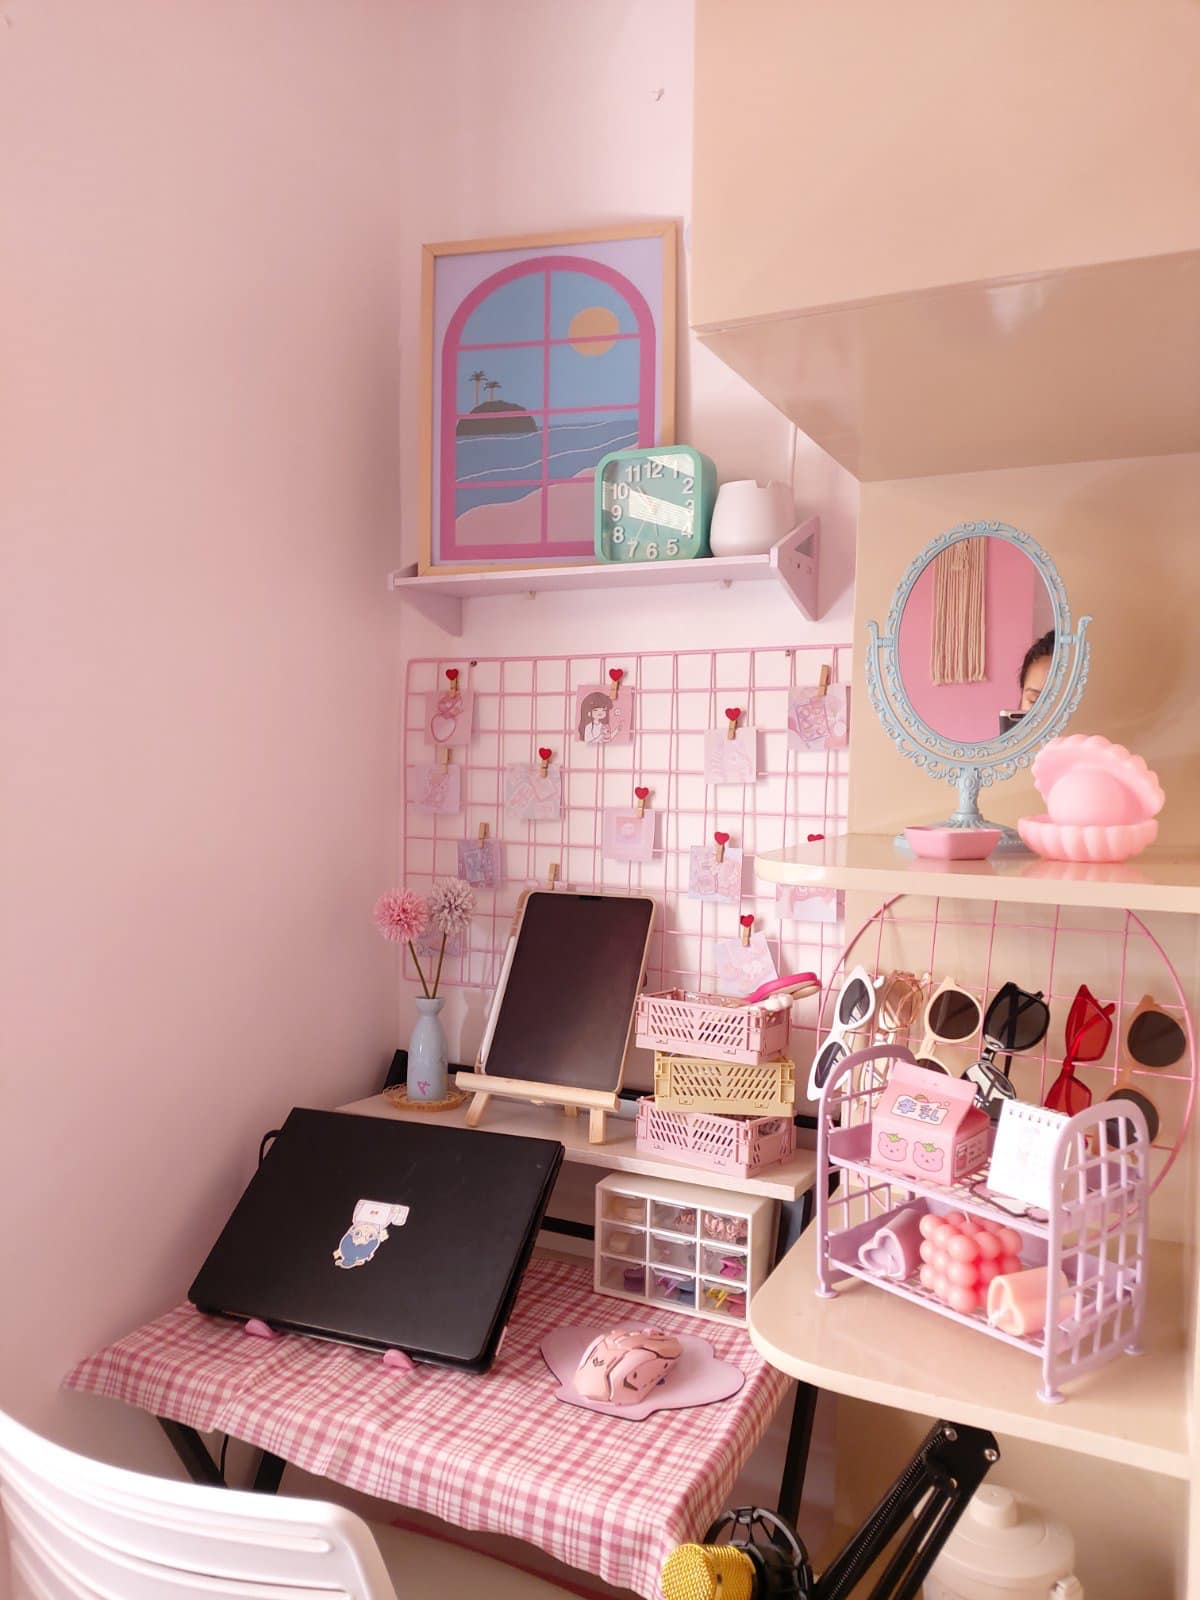 all-pink bedroom - study area